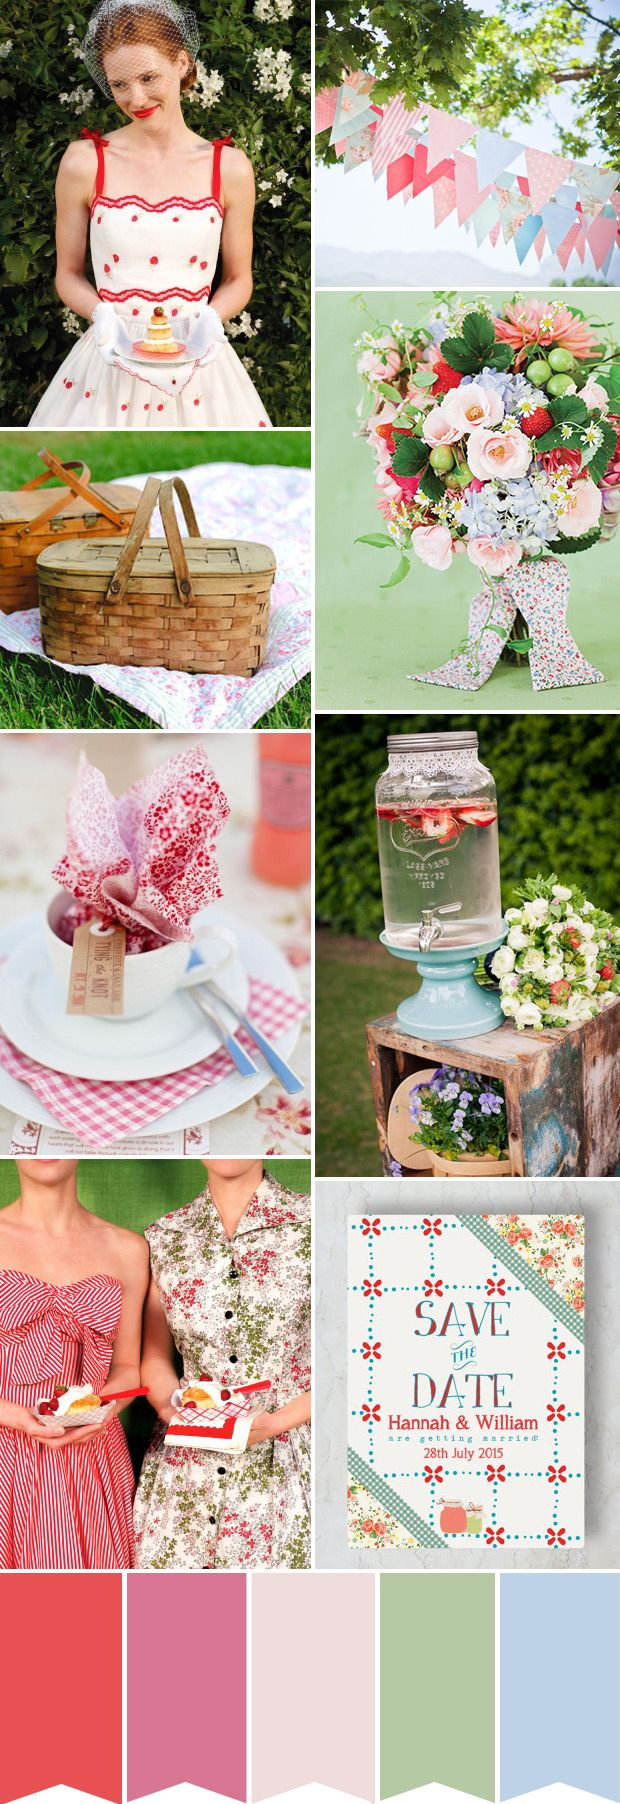 A Retro Picnic Inspired Wedding | www.onefabday.com